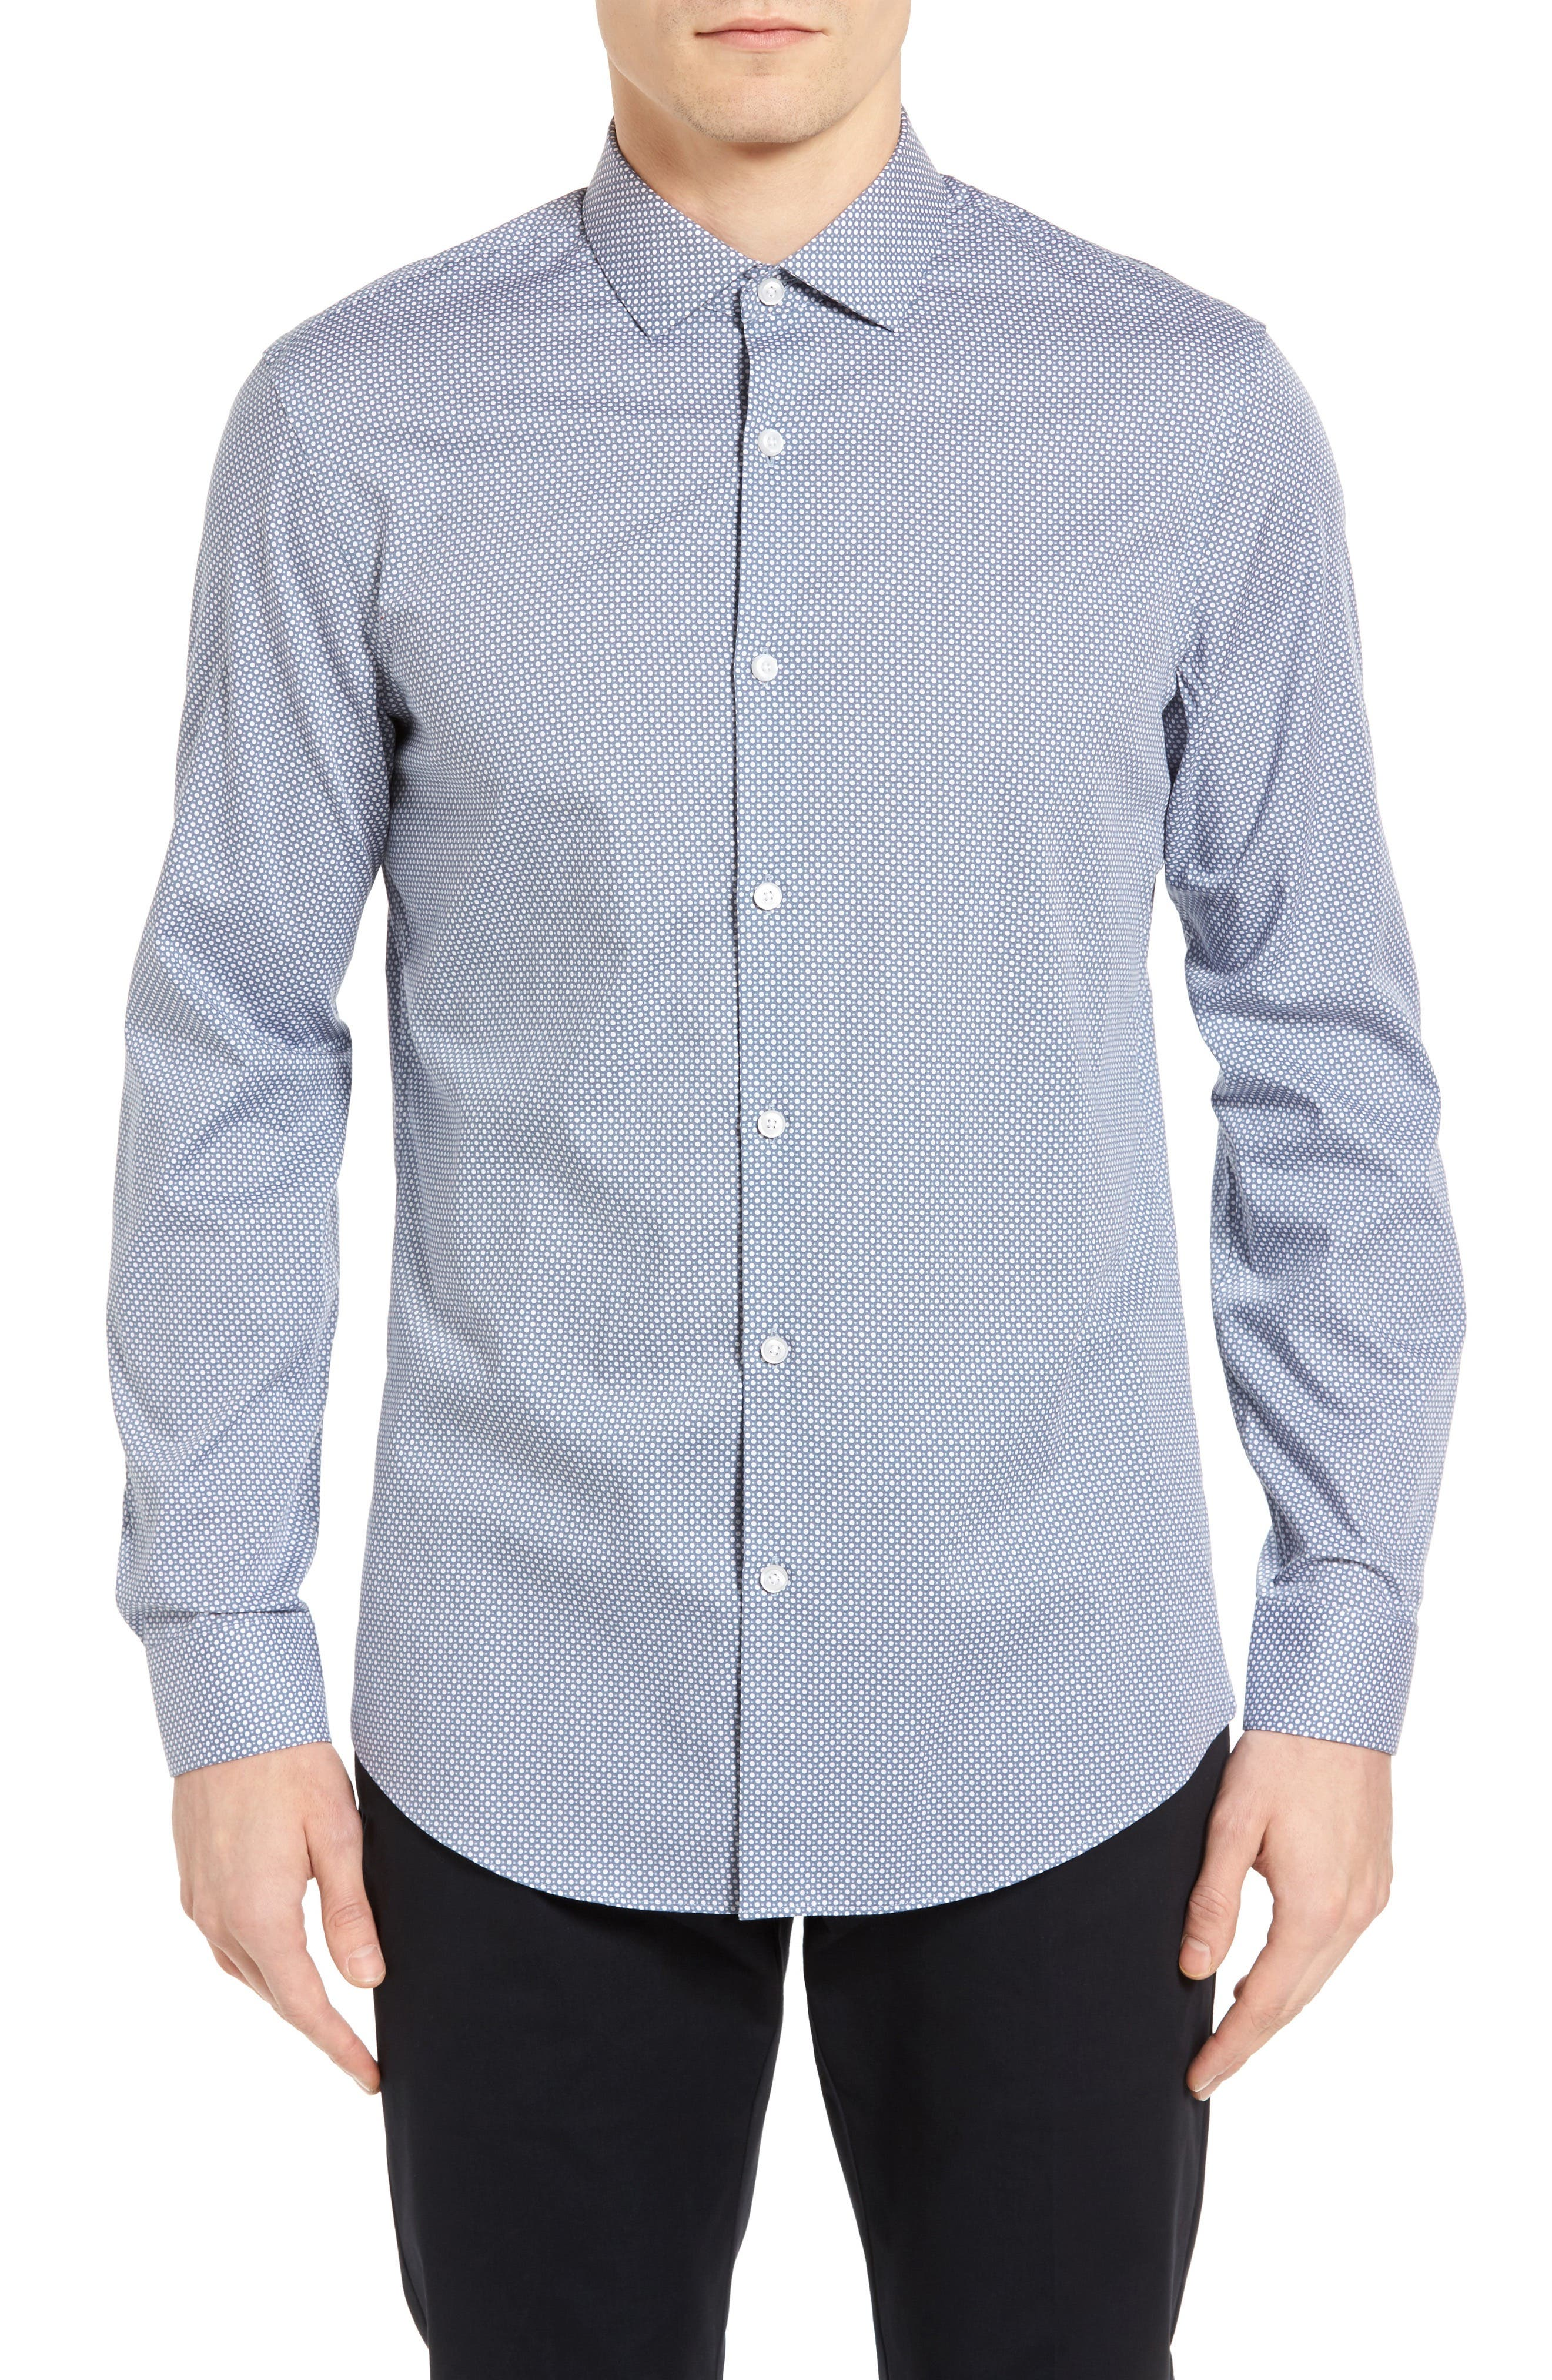 Calibrate Slim Fit Non Iron Print Sport Shirt